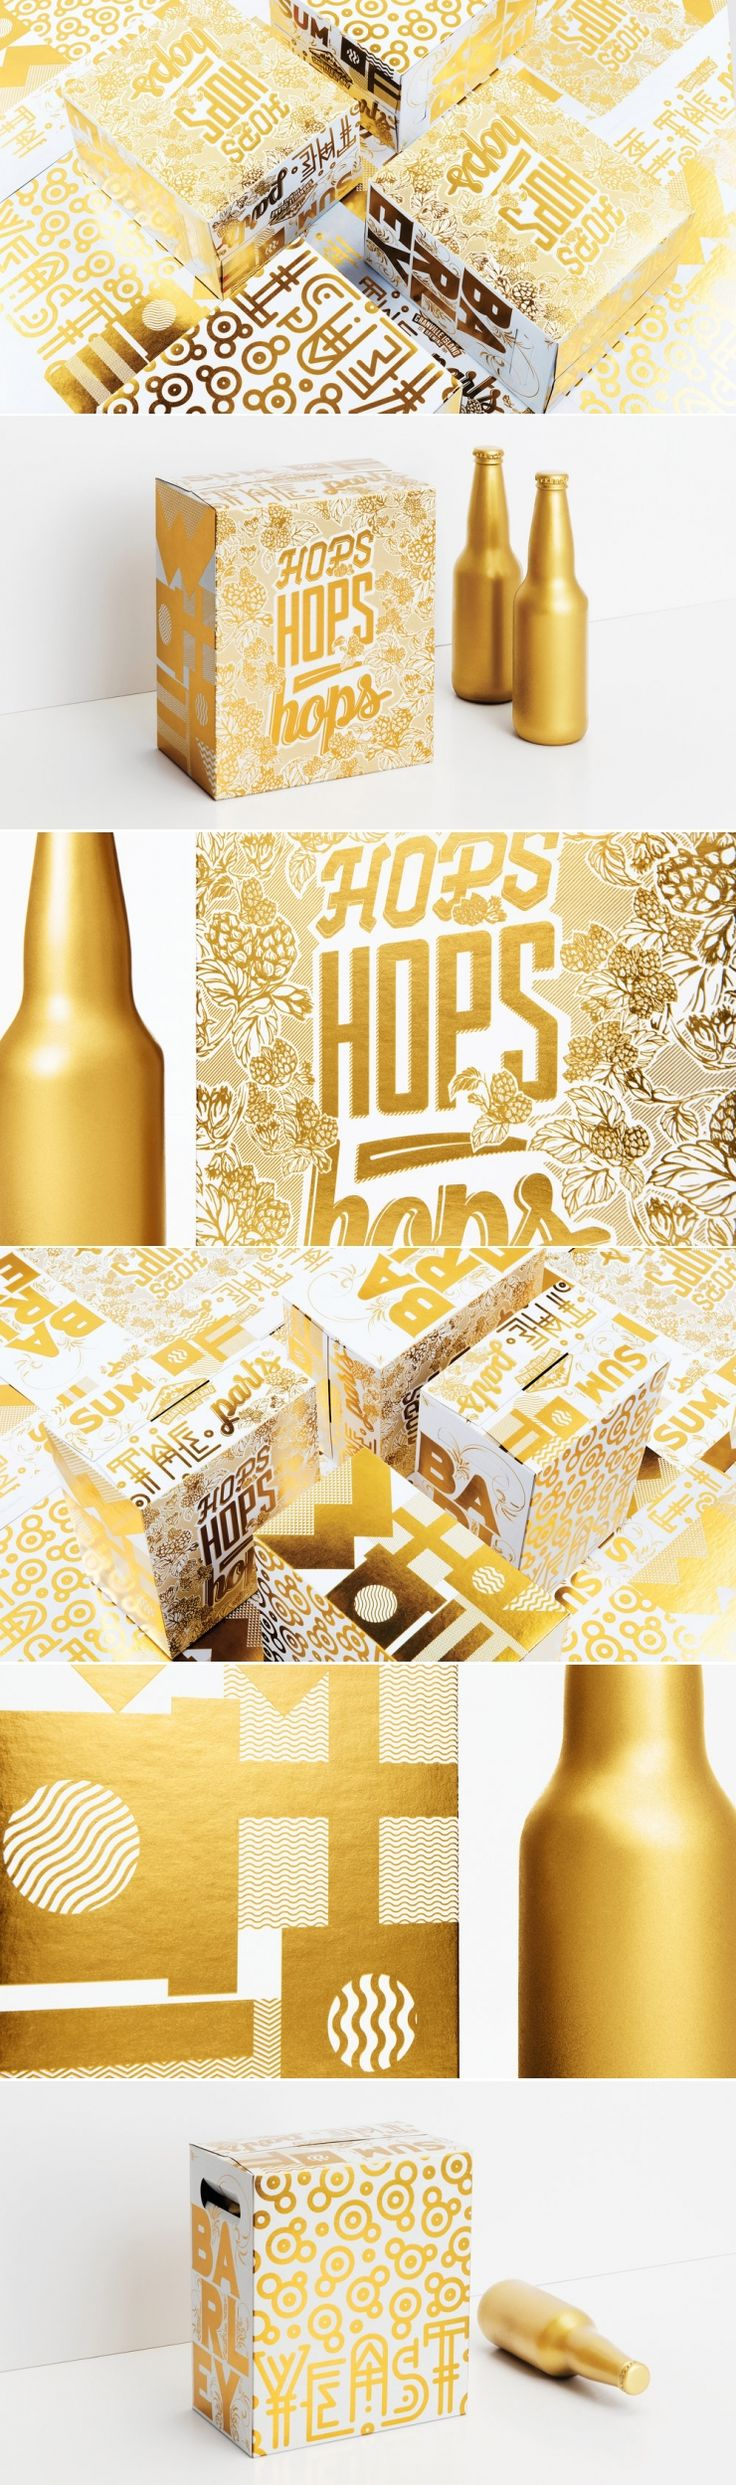 Six Packs Have Never Looked Quite As Glamorous As This — The Dieline | Packaging & Branding Design & Innovation News